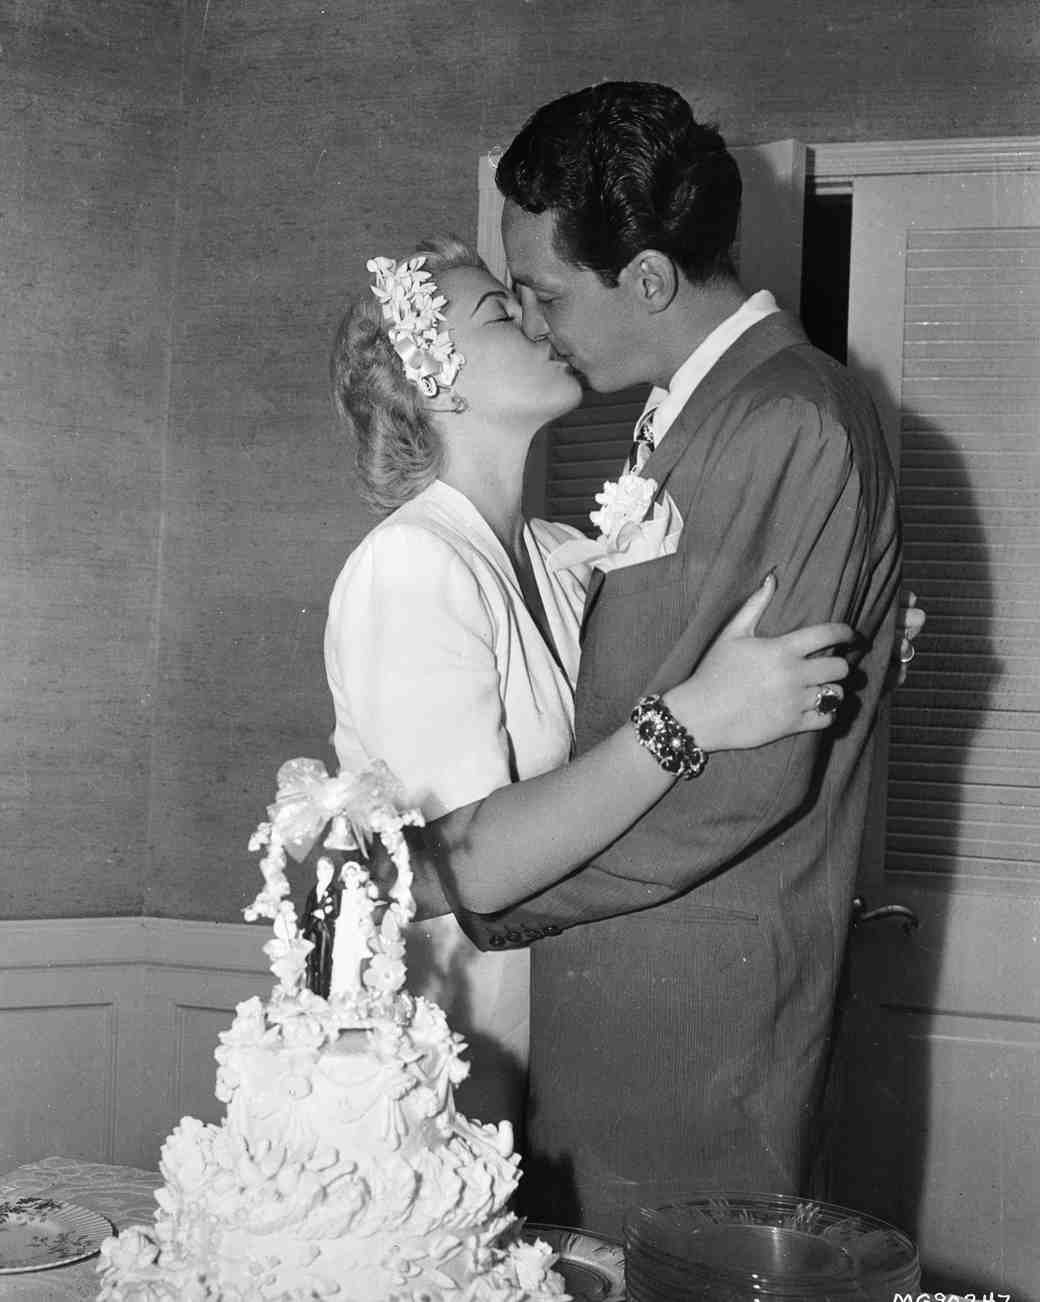 celebrity-vintage-wedding-cakes-lana-turner-3170473-1015.jpg